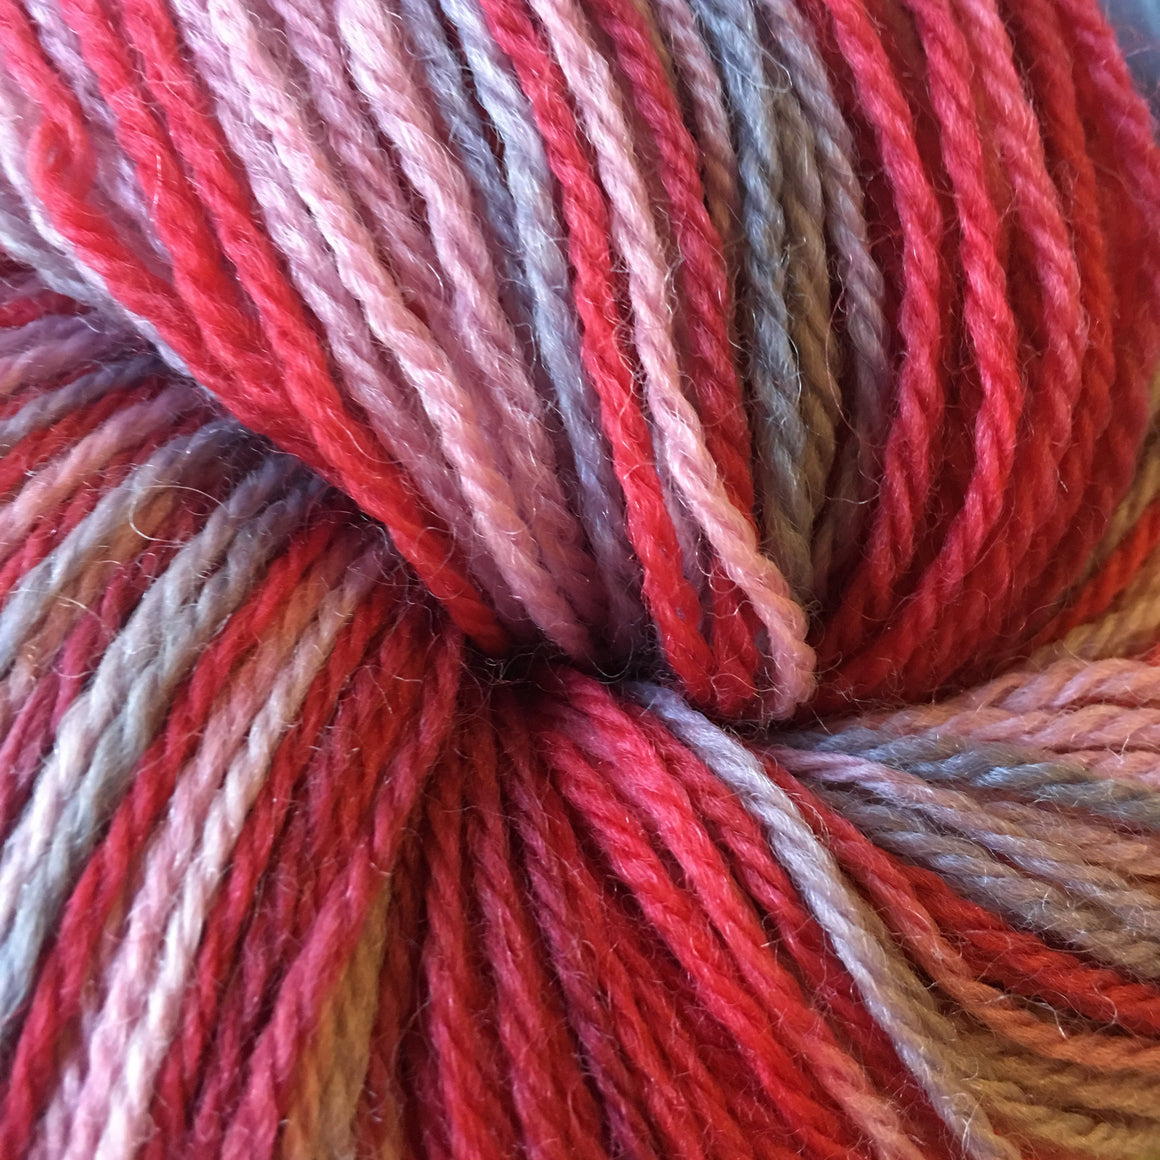 """February Love"" is a valentine red pink and gray variegated yarn on super wash merino fingering weight yarn"